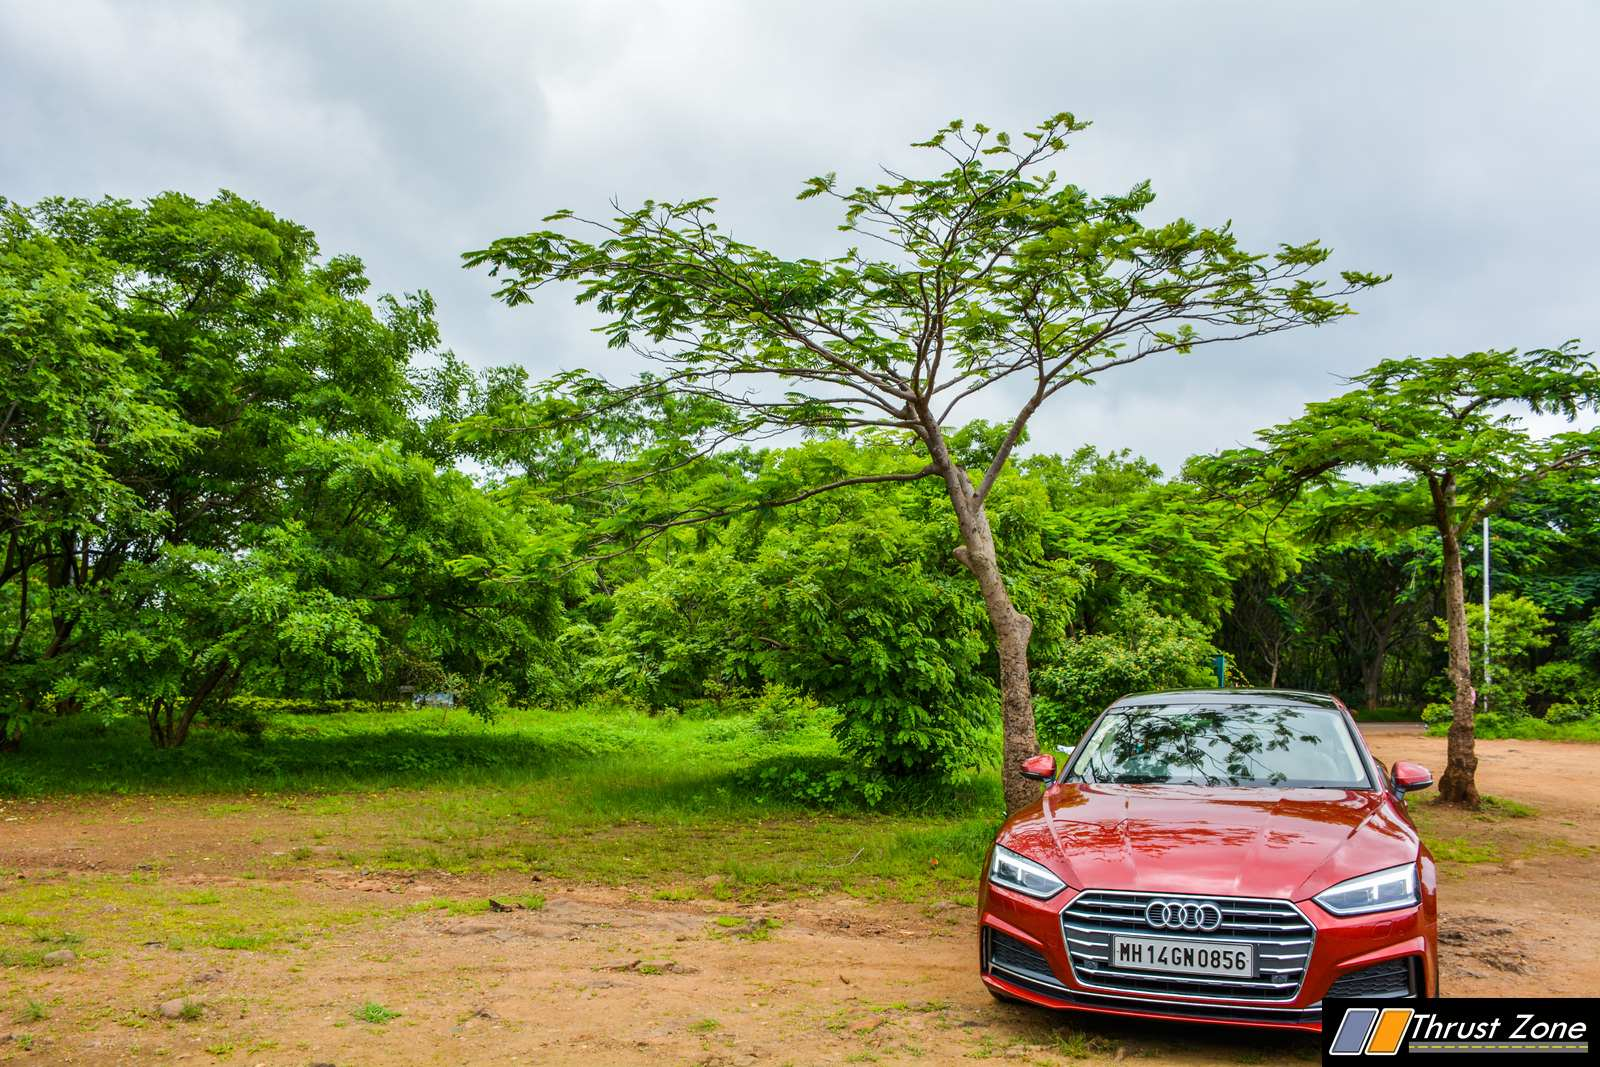 https://www.thrustzone.com/wp-content/uploads/2018/08/2018-Audi-A5-Diesel-India-Review-18.jpg